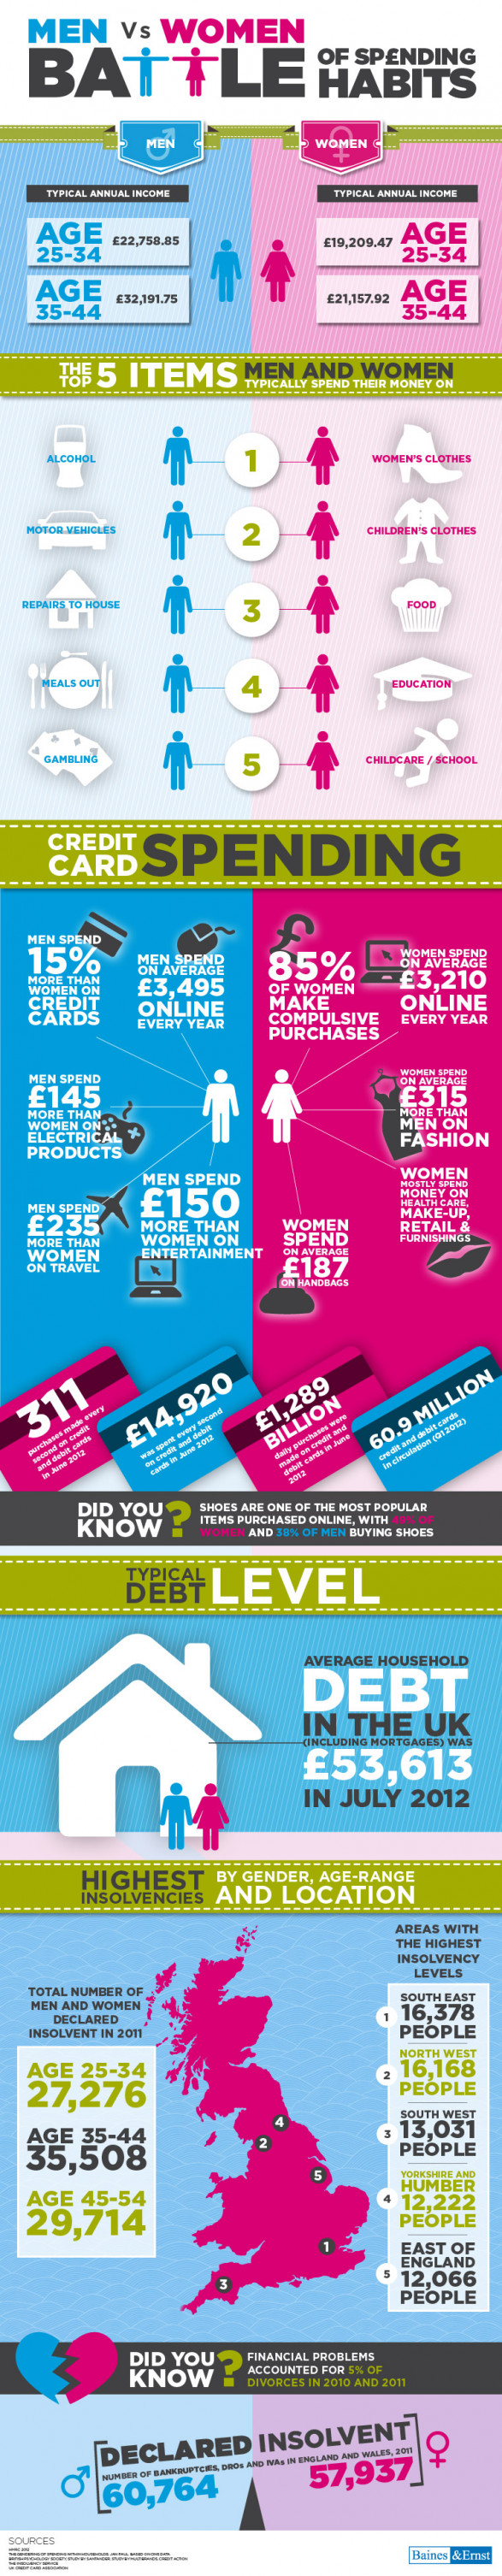 Men Vs. Women - Spending Habits